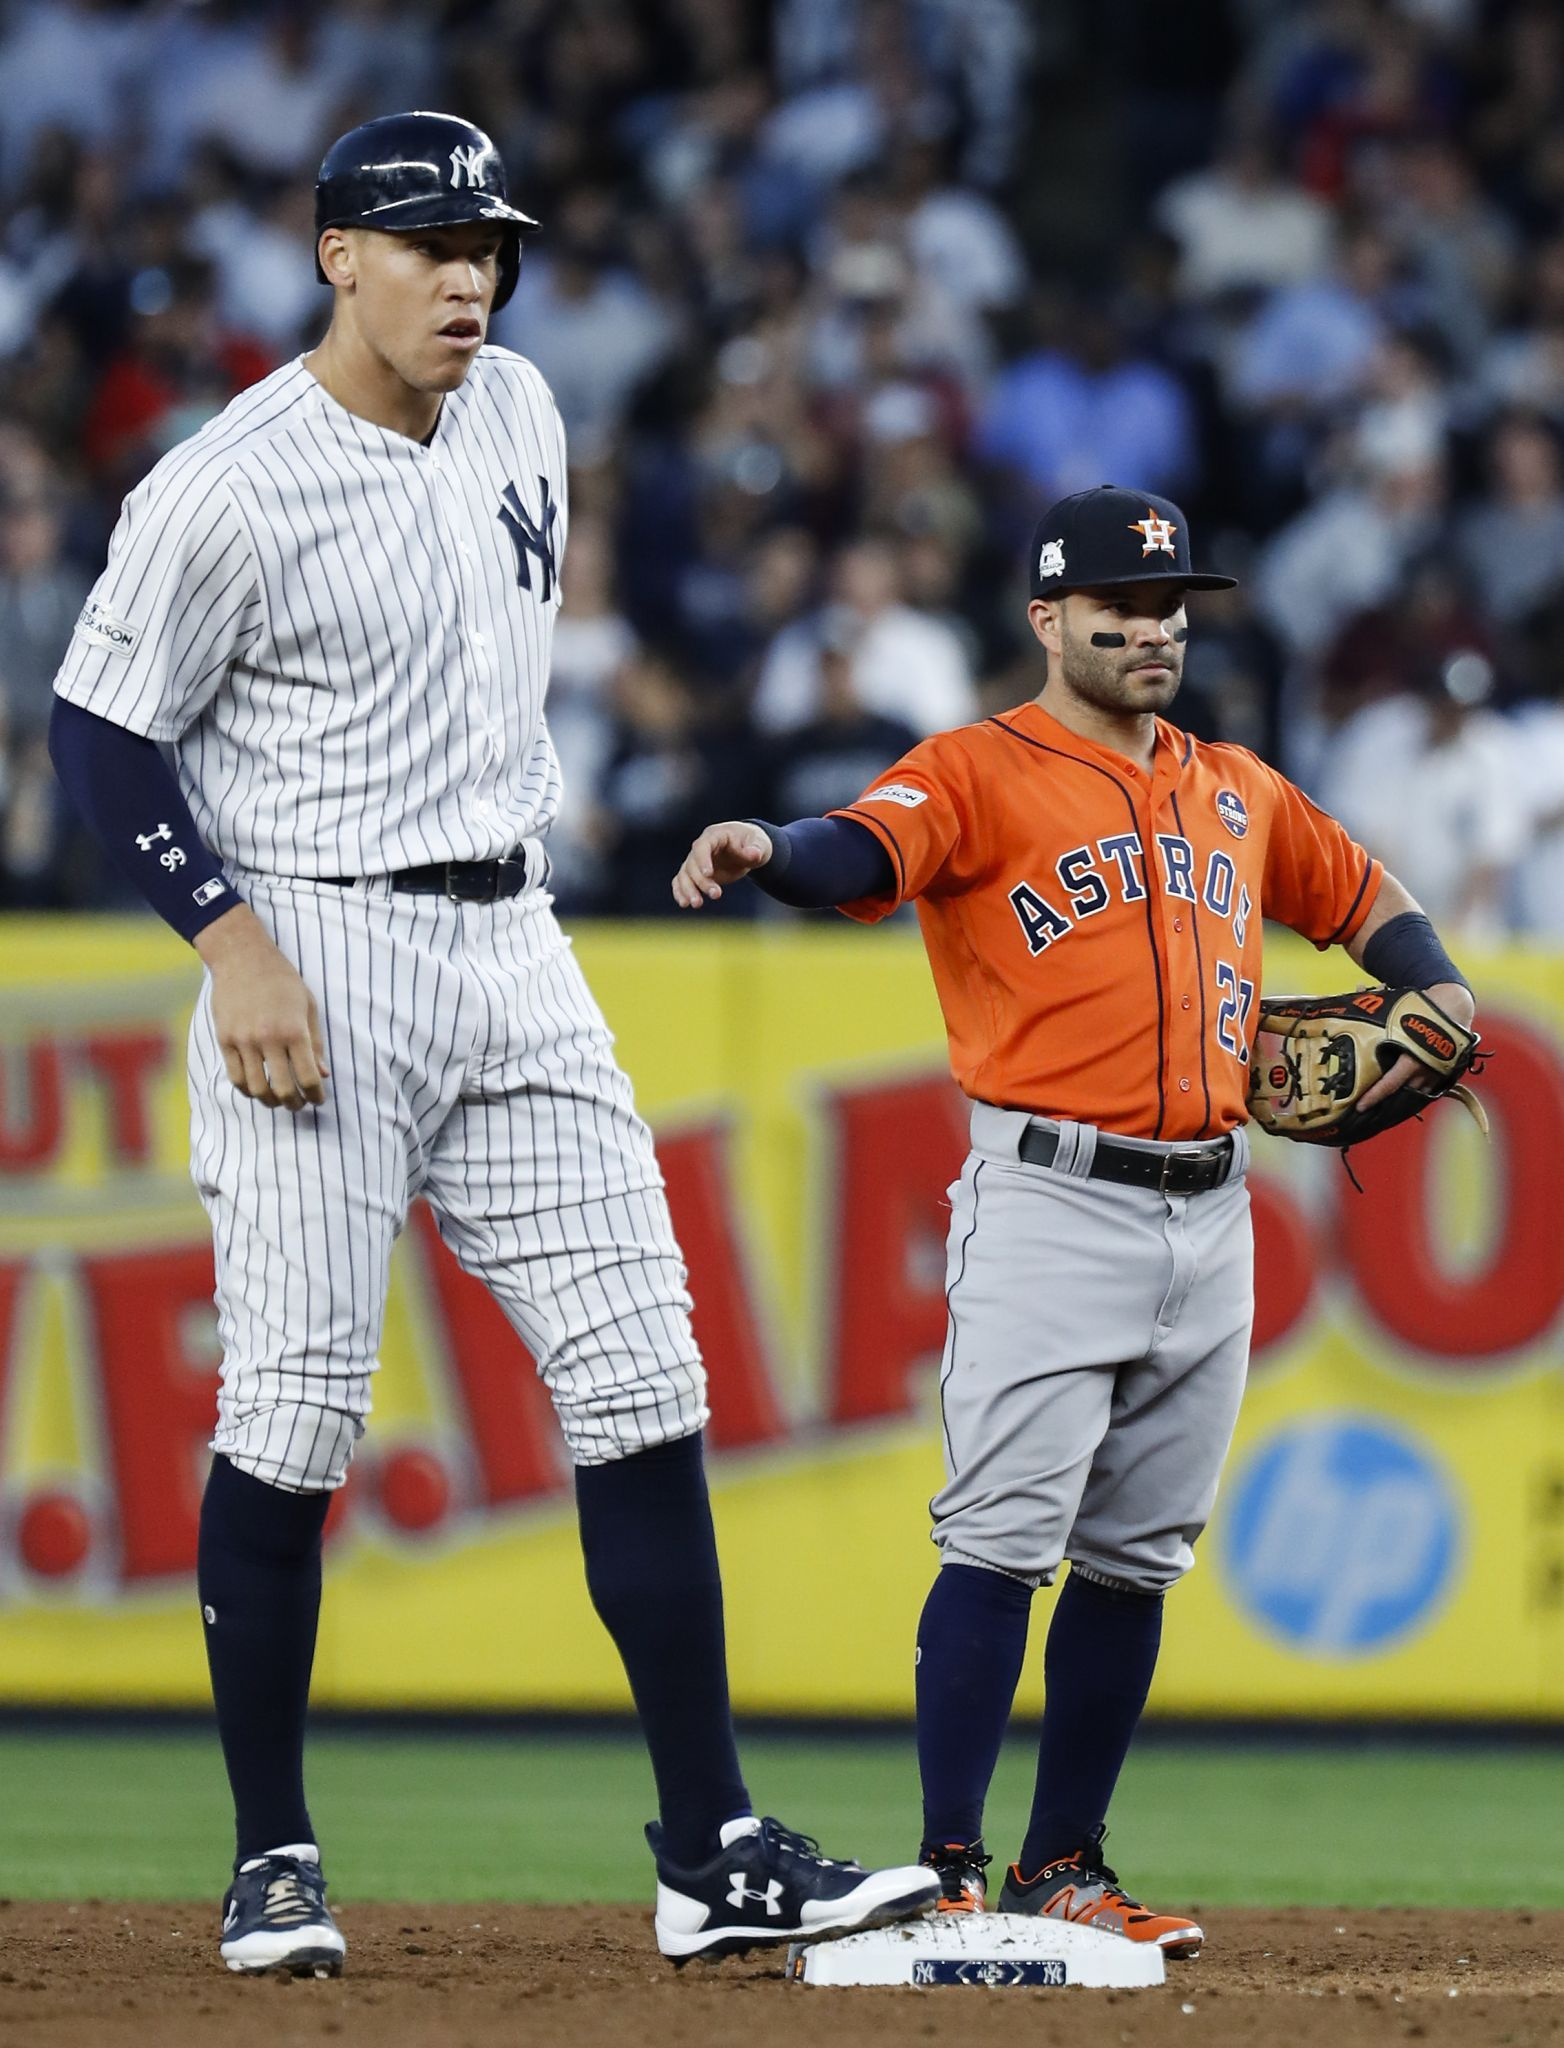 Pin By Paul Kuhn On Sports Photos In 2020 Yankees Jose Altuve Ny Yankees